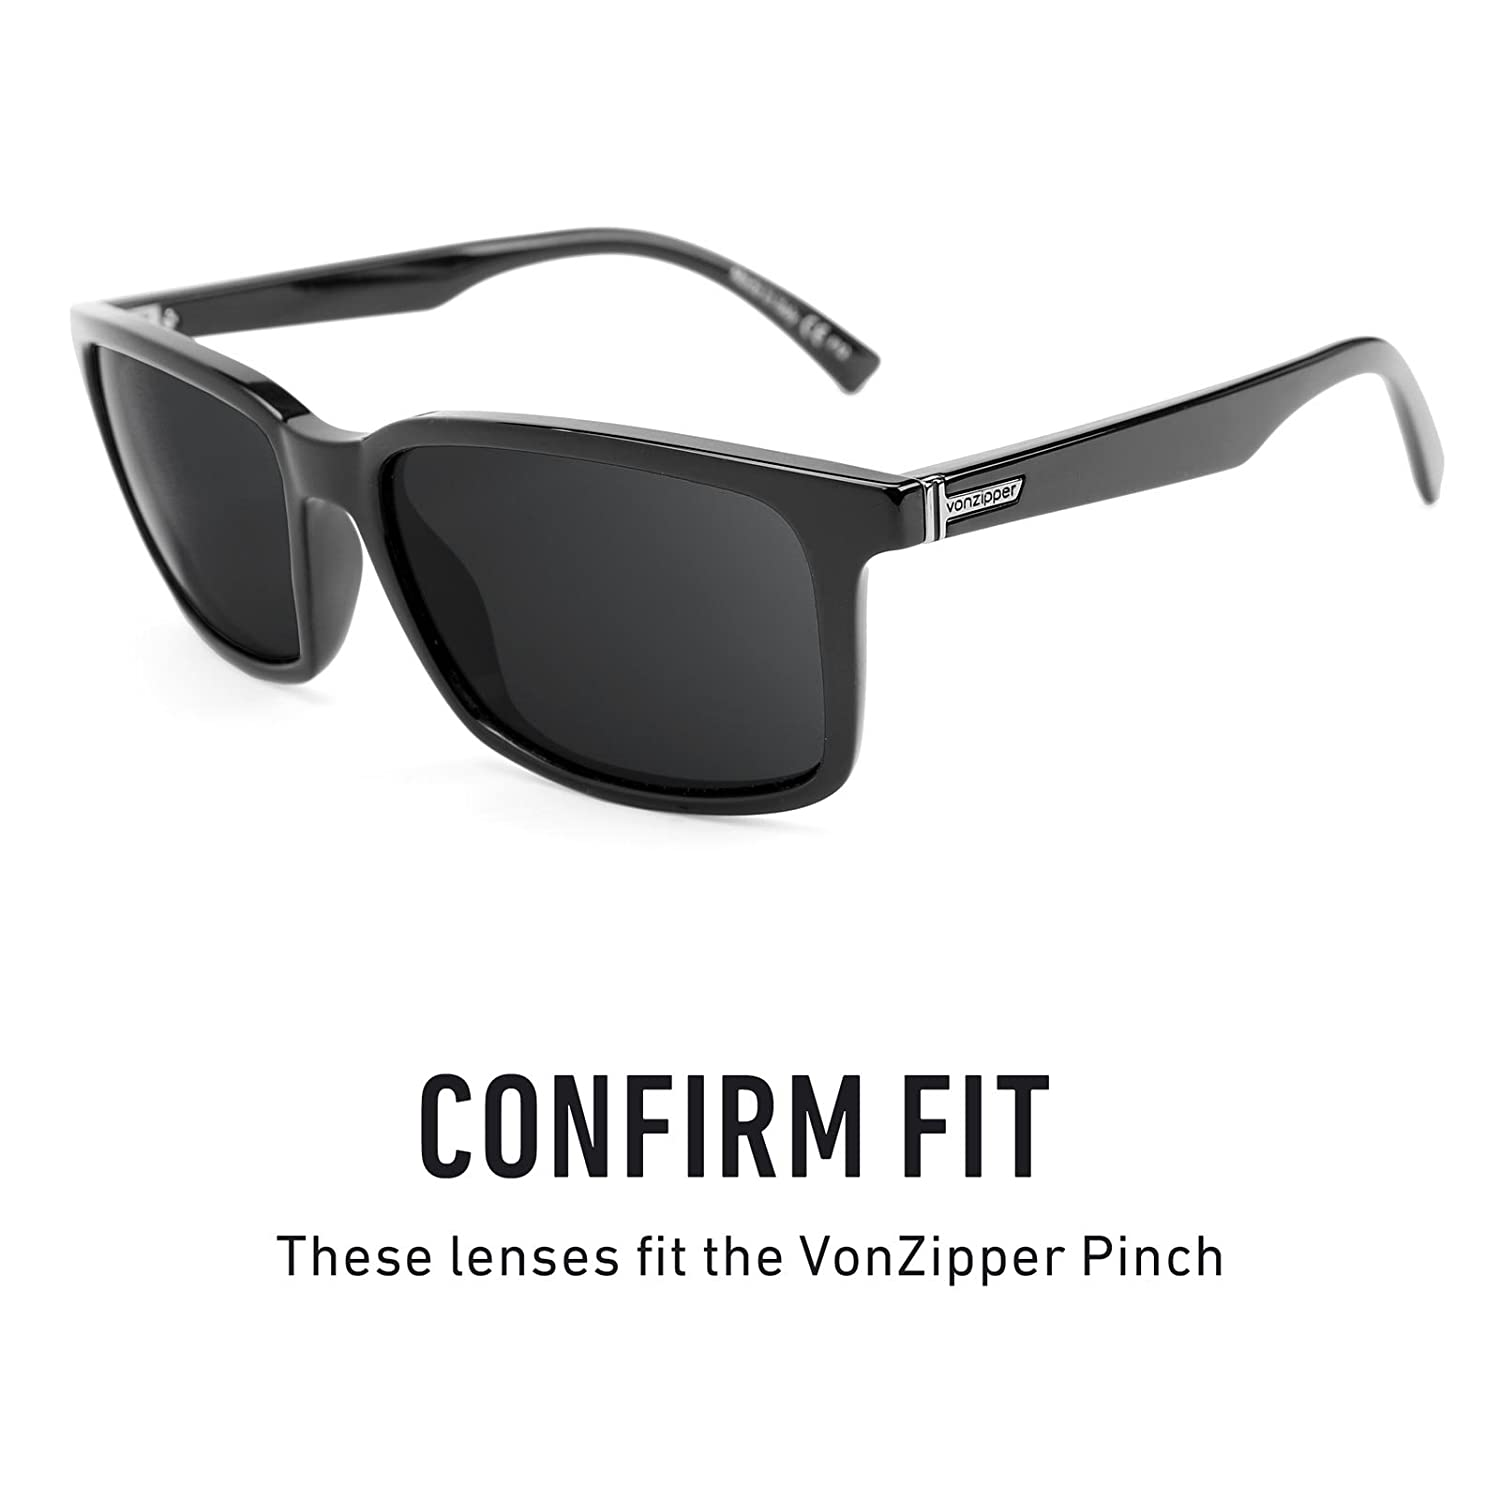 cfbe0d5c98e Amazon.com  Revant Polarized Replacement Lenses for VonZipper Pinch Elite  Black Chrome MirrorShield  Sports   Outdoors